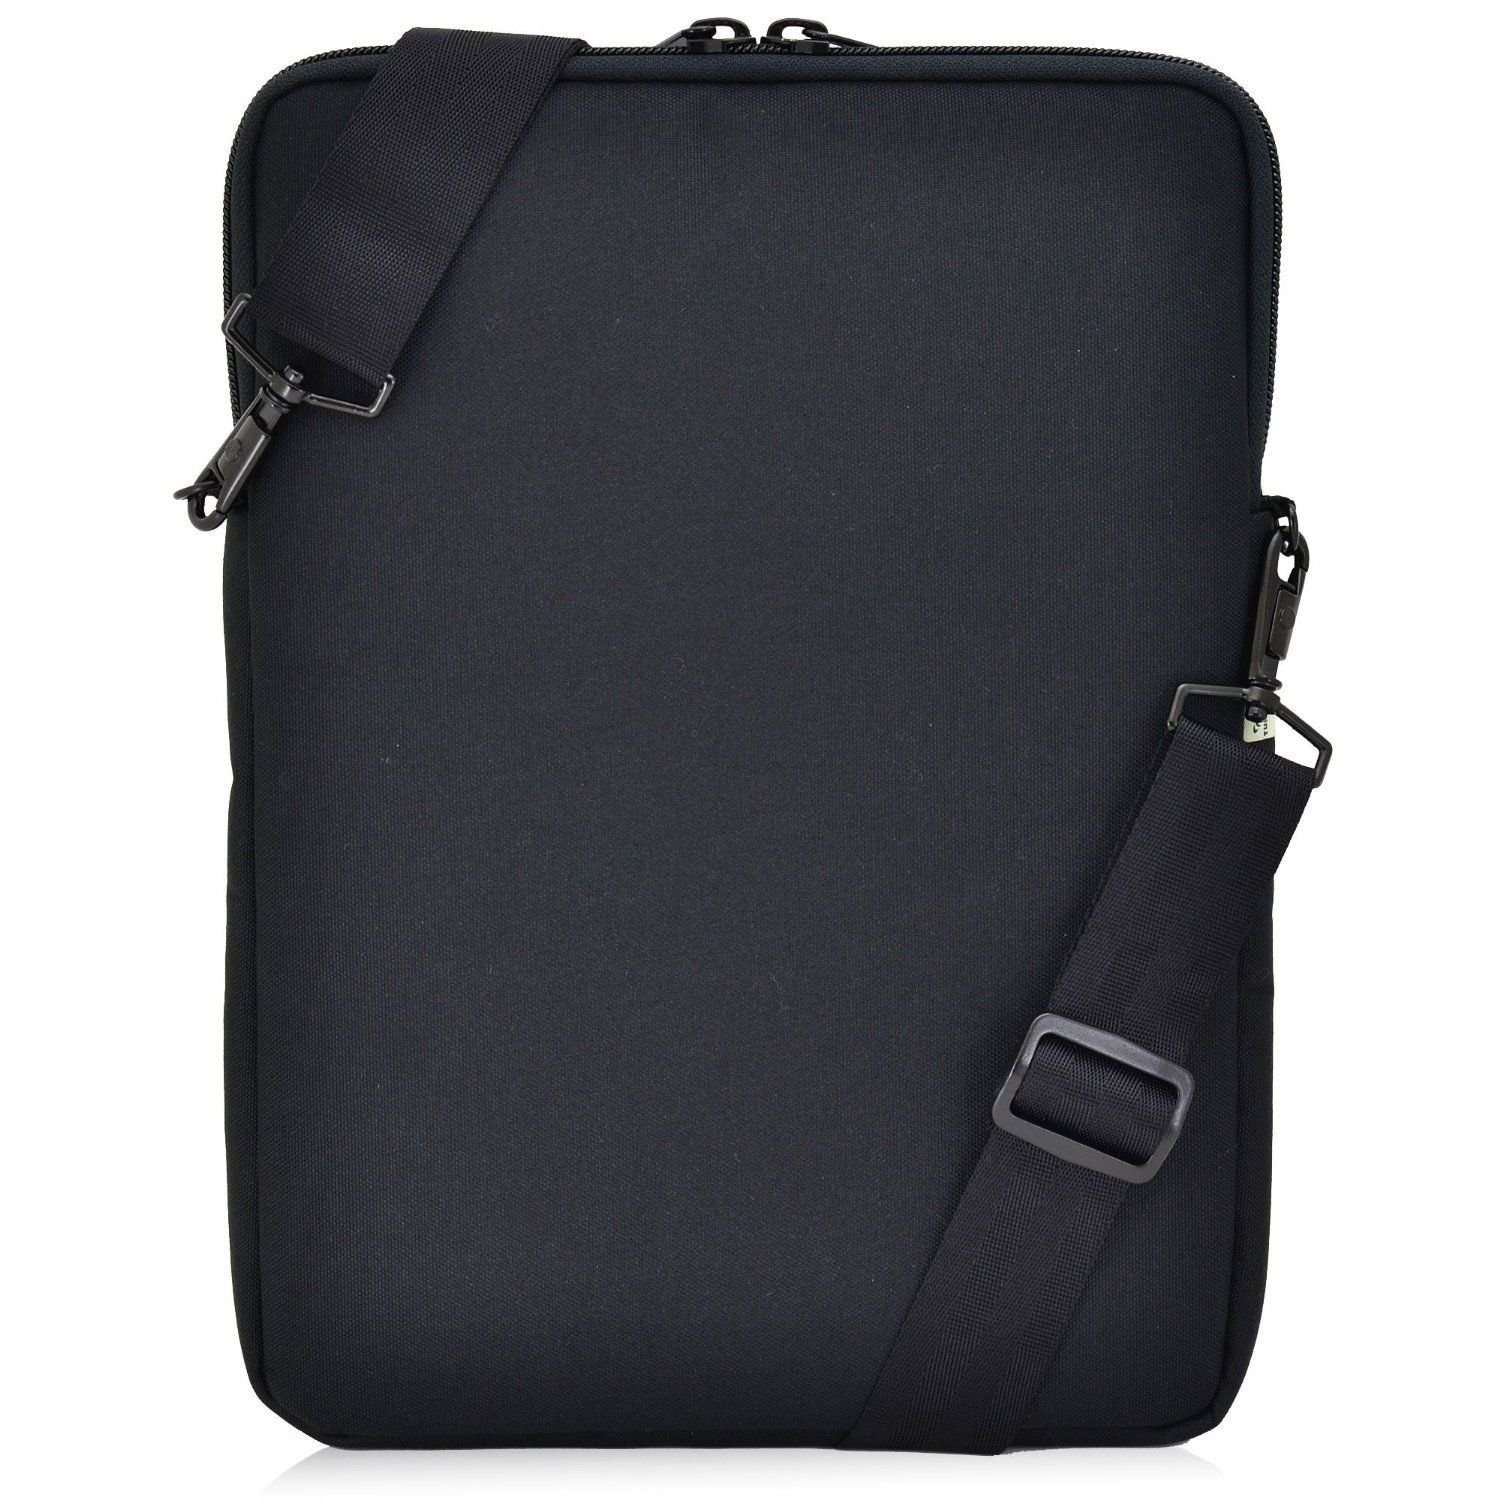 """Turtleback Universal Laptop and iPad Pro 12.9 Pouch Bag with Shoulder Strap - Fits Devices up to 13"""" Inch - (Black), Made in USA"""